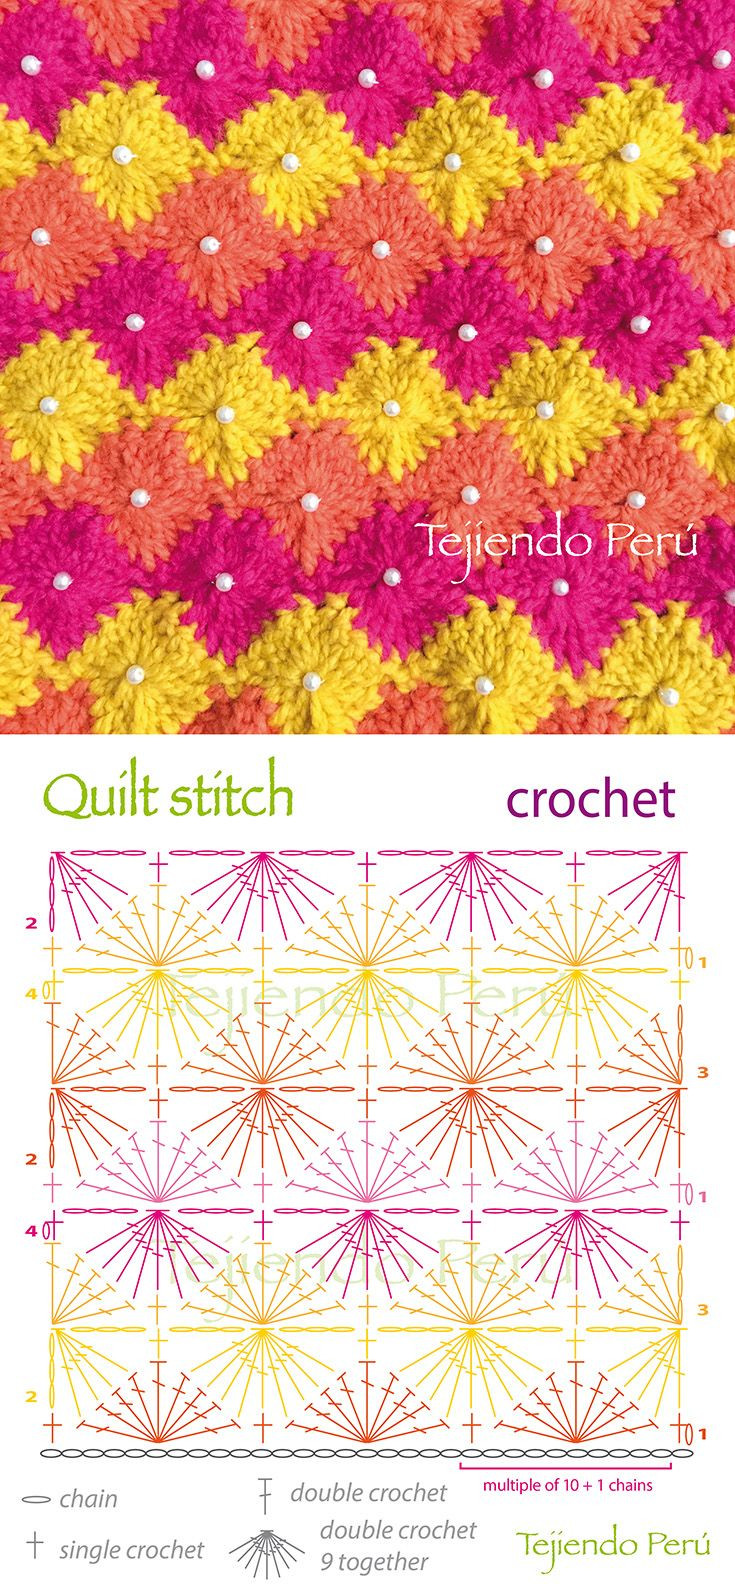 Inspirational Ergahandmade Crochet Stitches Diagrams Crochet Stitches Diagram Of Amazing 47 Ideas Crochet Stitches Diagram